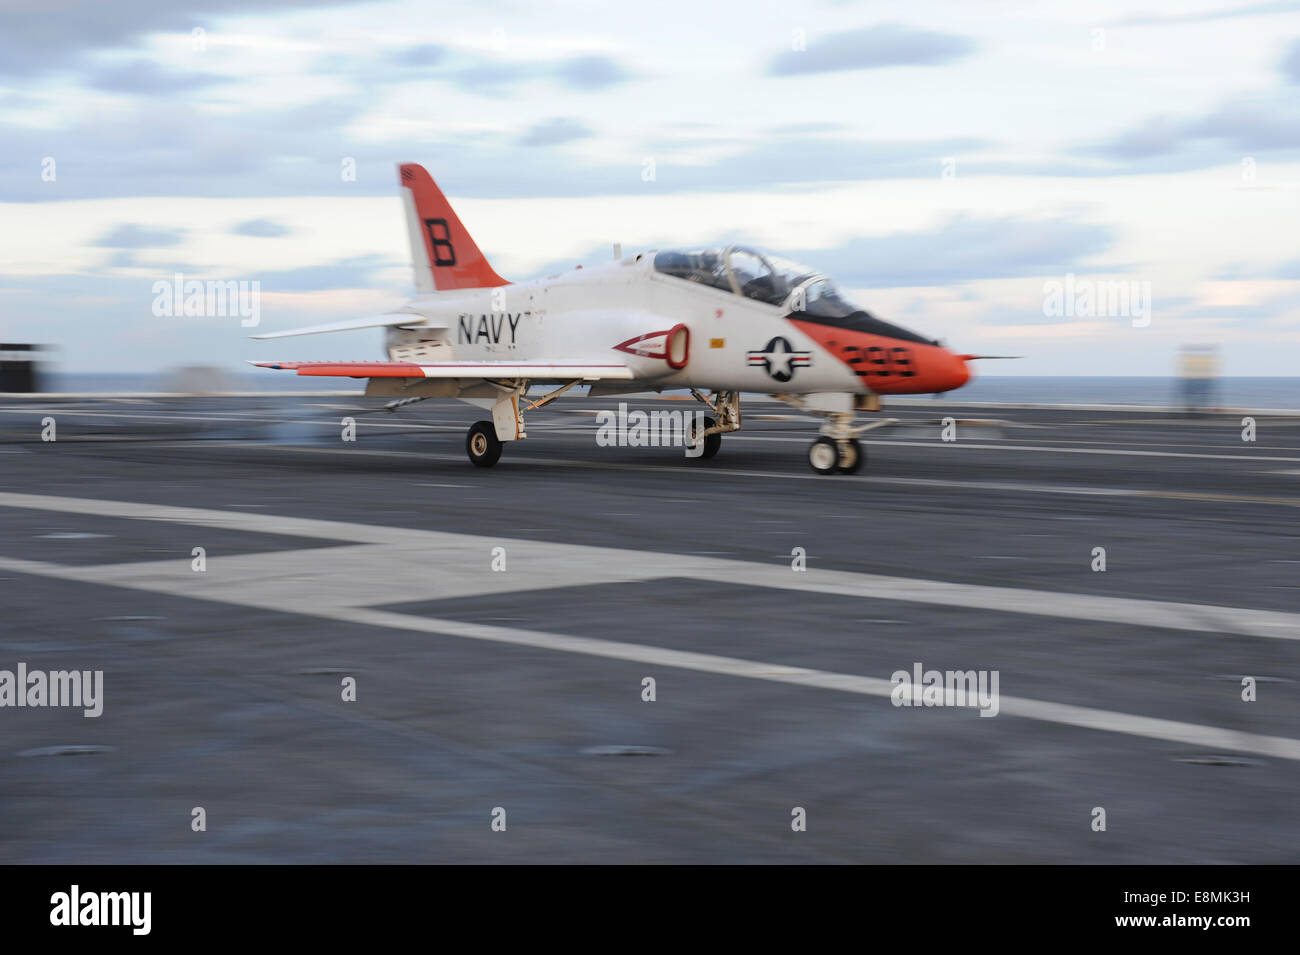 Atlantic Ocean, October 30, 2013 - A T-45C Goshawk is launched from the flight deck of the aircraft carrier USS - Stock Image